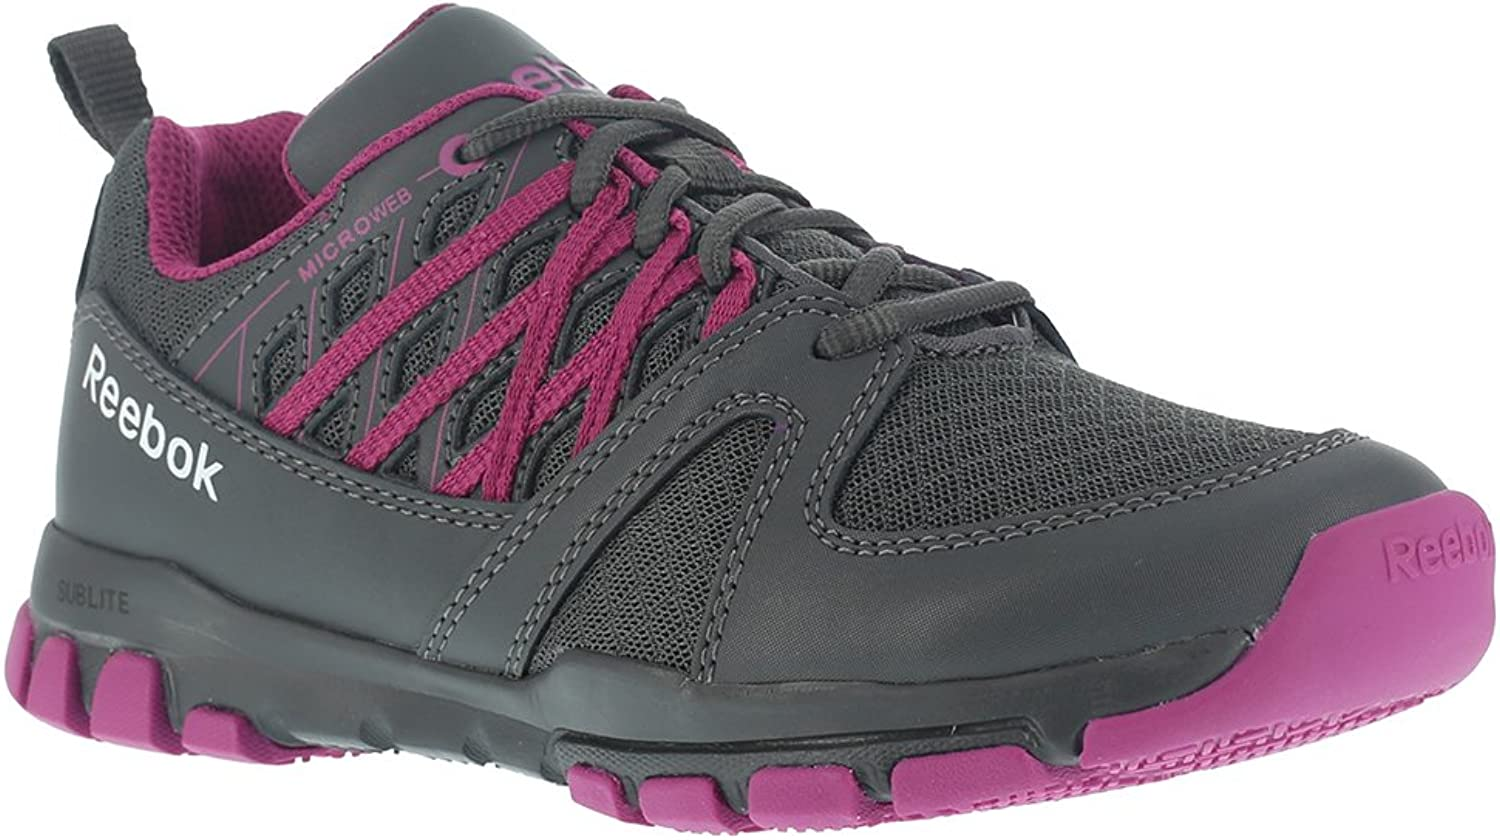 Reebok Womens Sublite Work Rb408 Work Boot